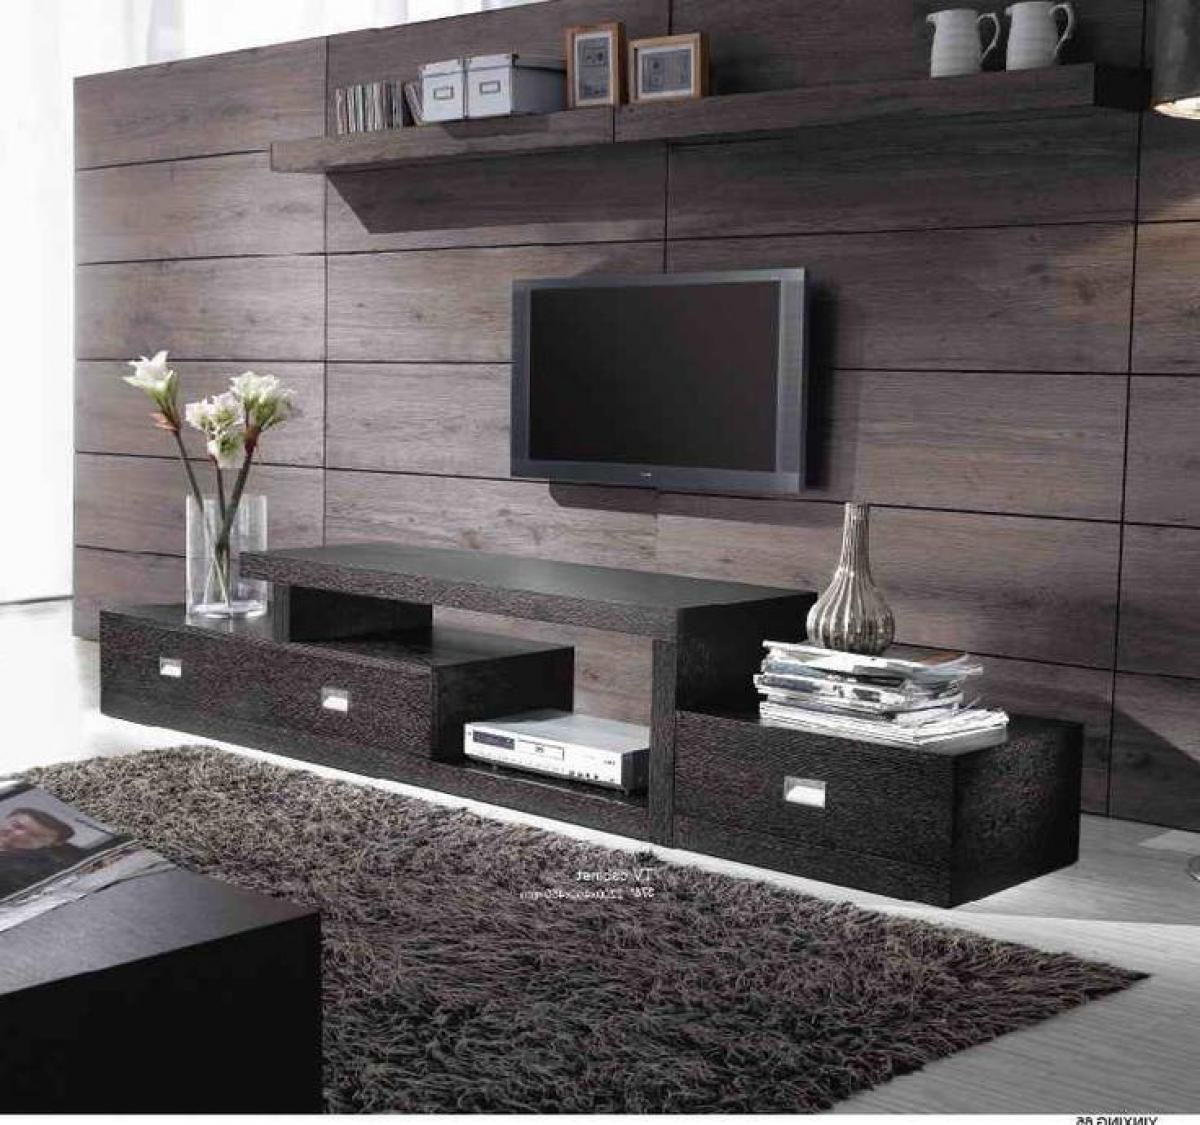 Black elegance interior entertainment home design with for Wood walls decorating ideas